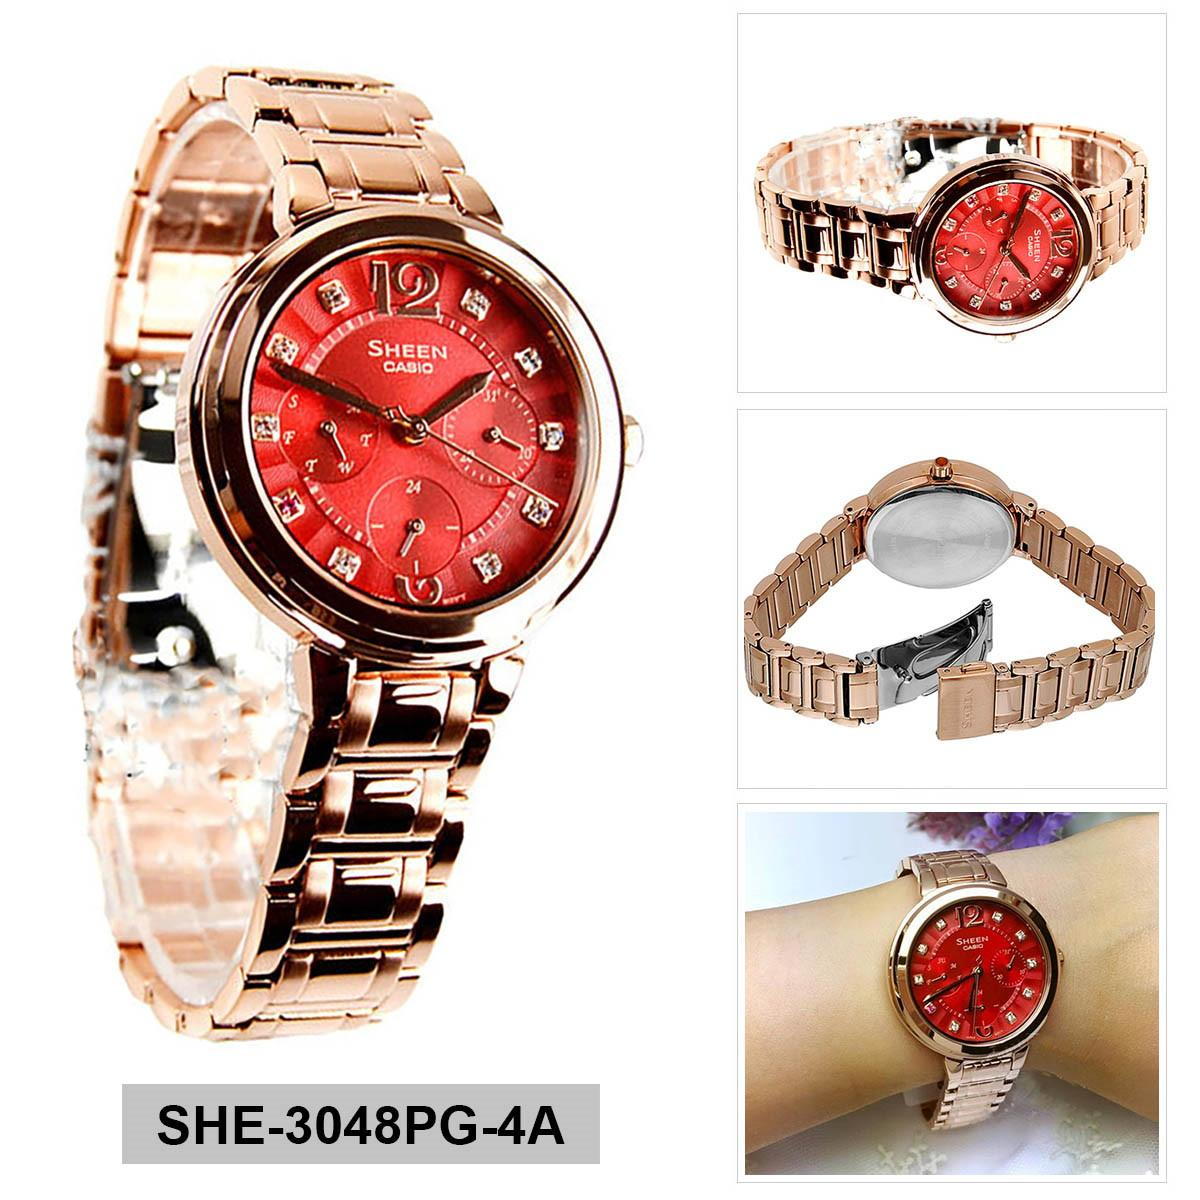 Casio Watch Standard Gold Stainless Steel Case Jam Tangan General Ladies Strap Ltp 1095q 9a Specifications Of Sheen Rose Bracelet